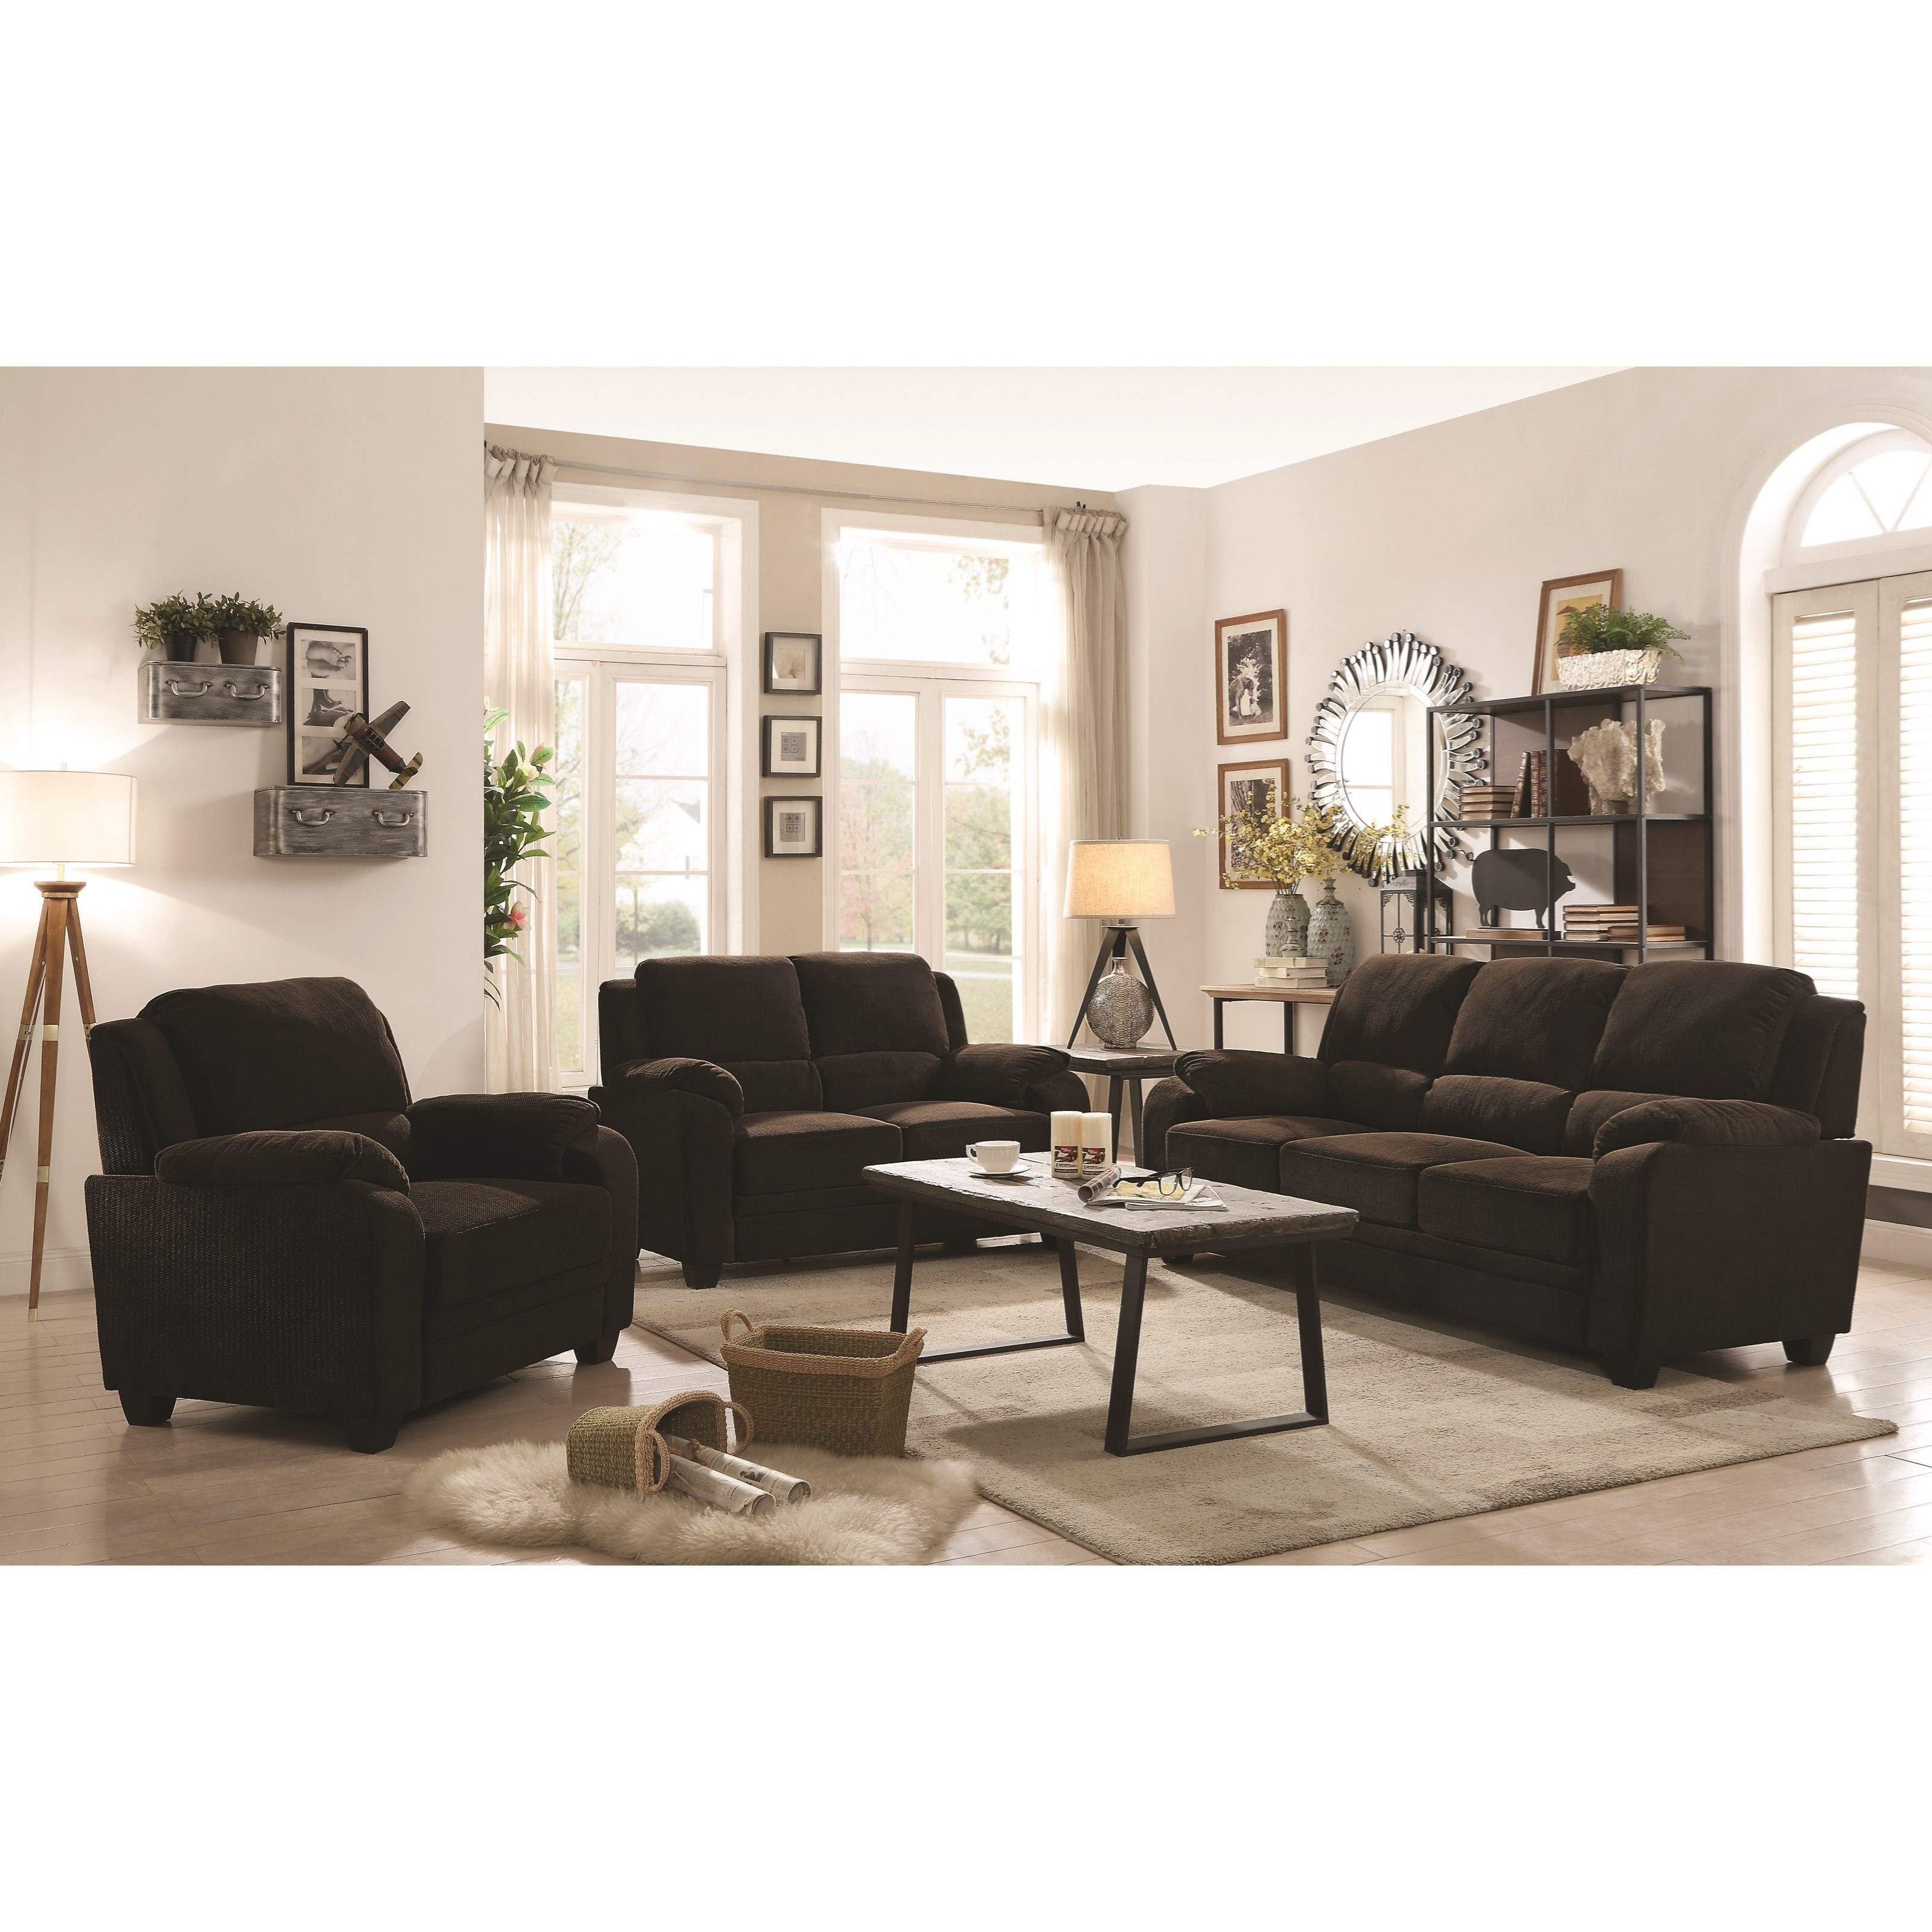 Coaster Northend Stationary Living Room Group | Prime Brothers ...